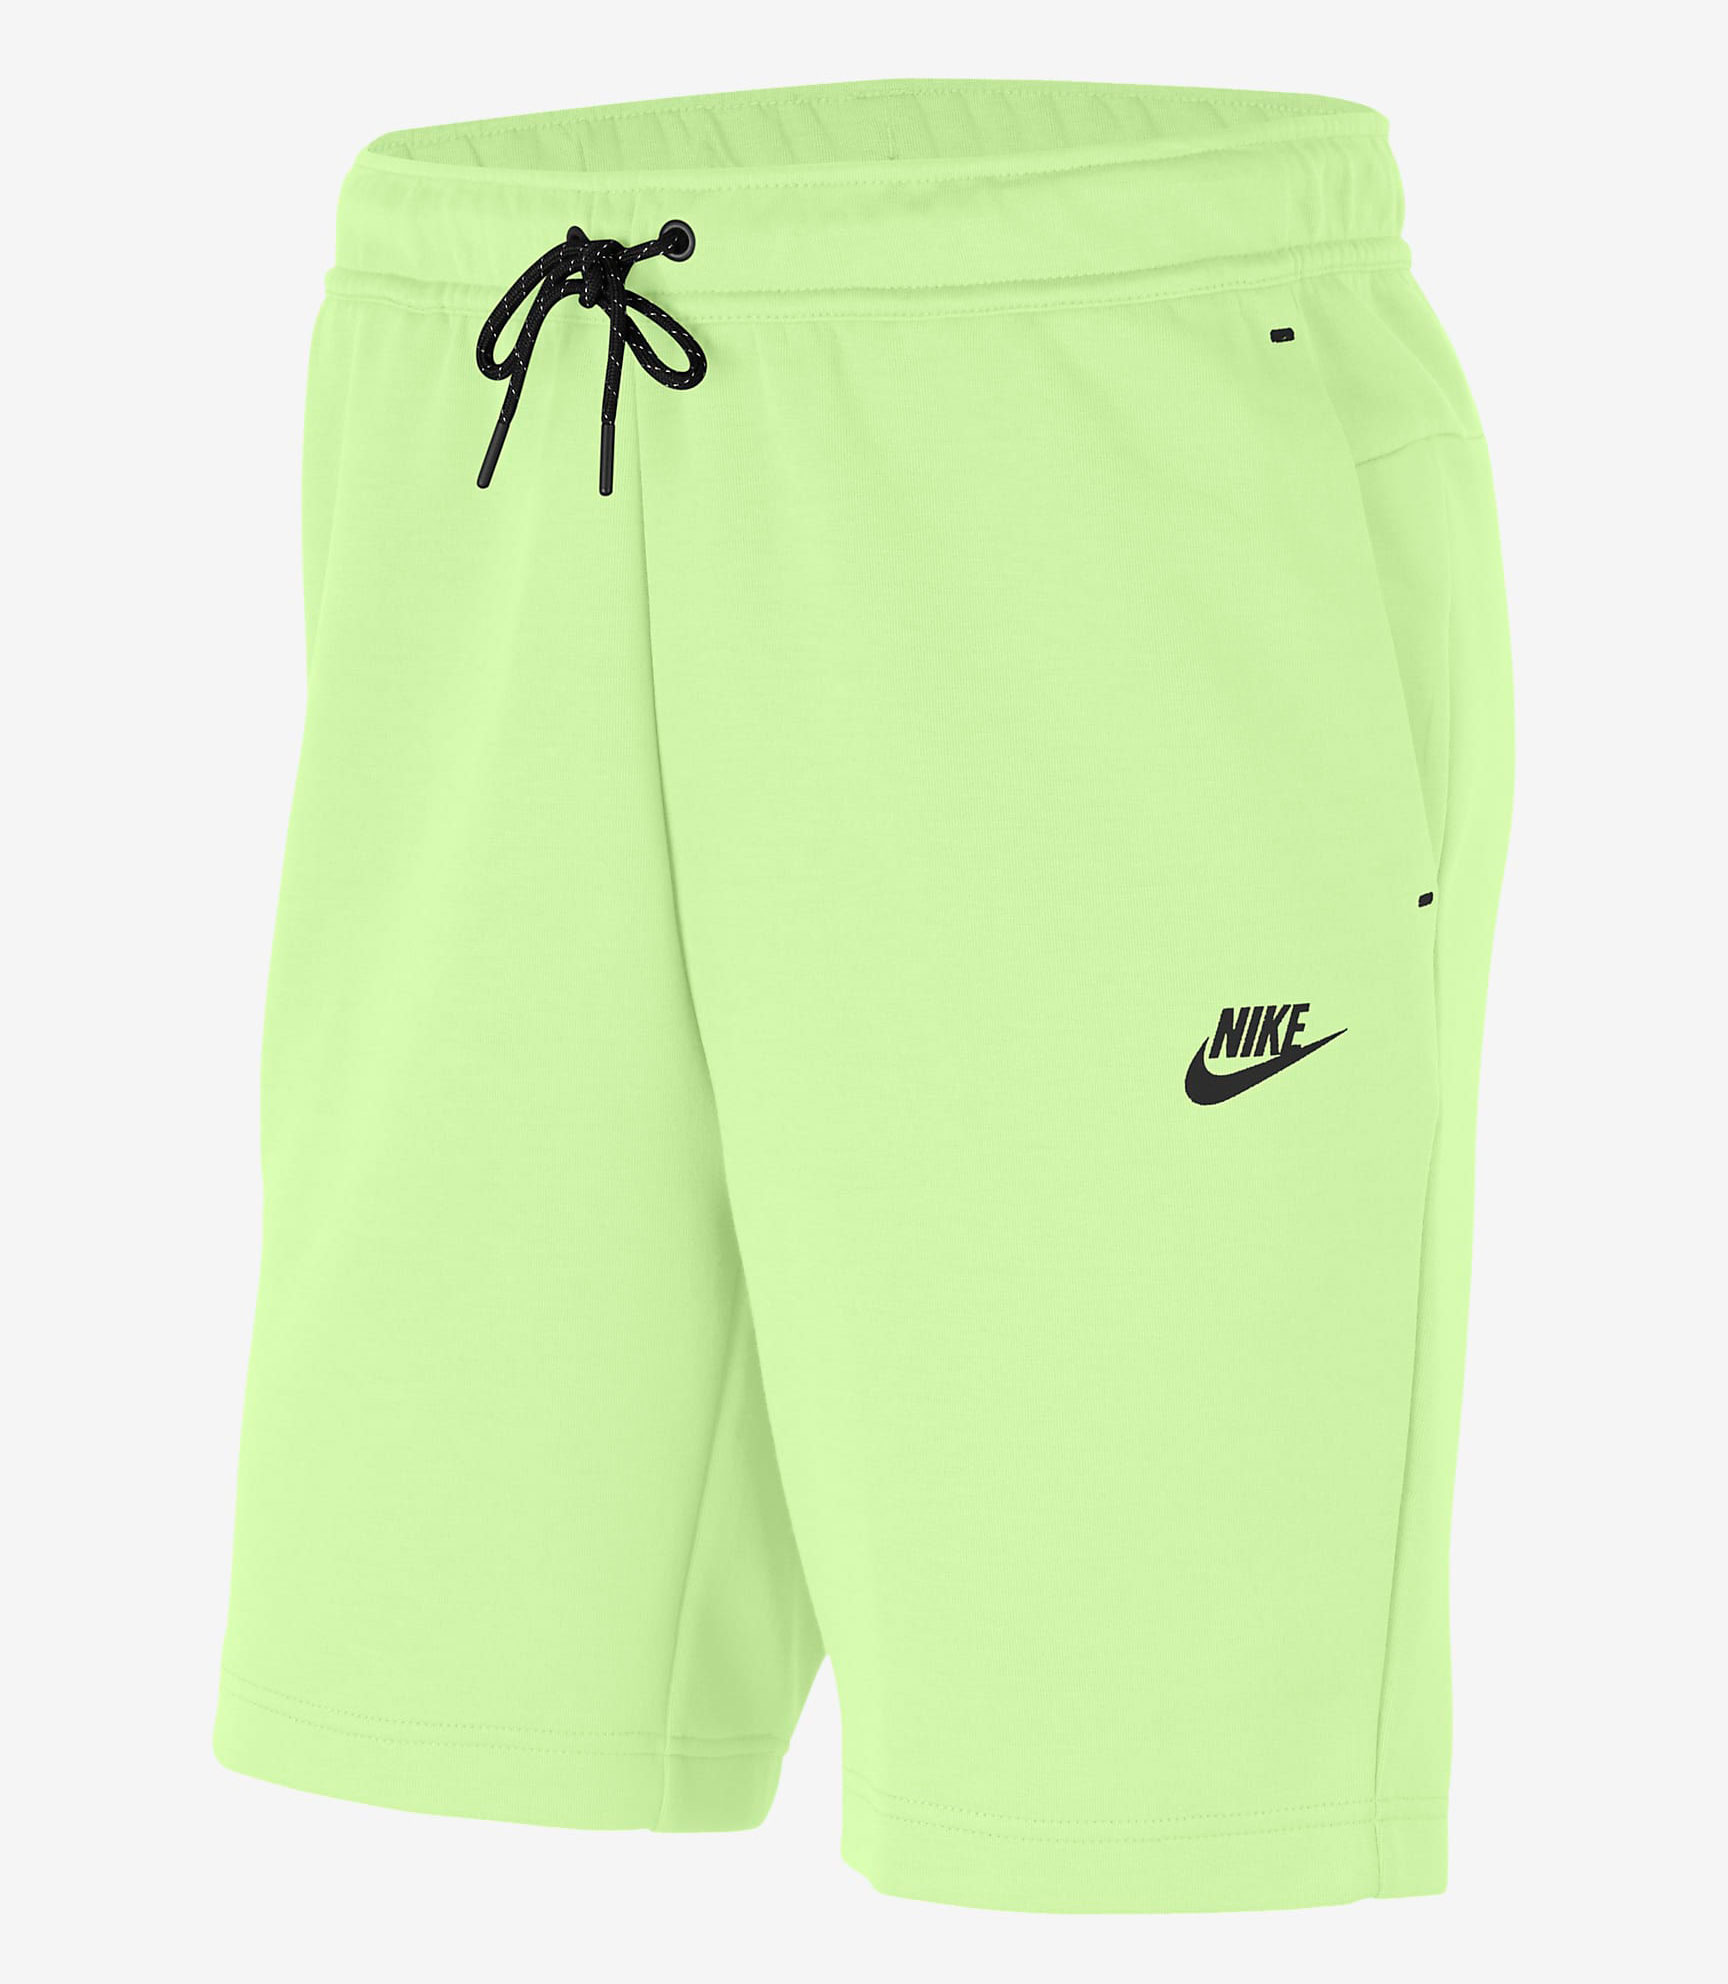 nike-tech-fleece-shorts-light-liquid-lime-1